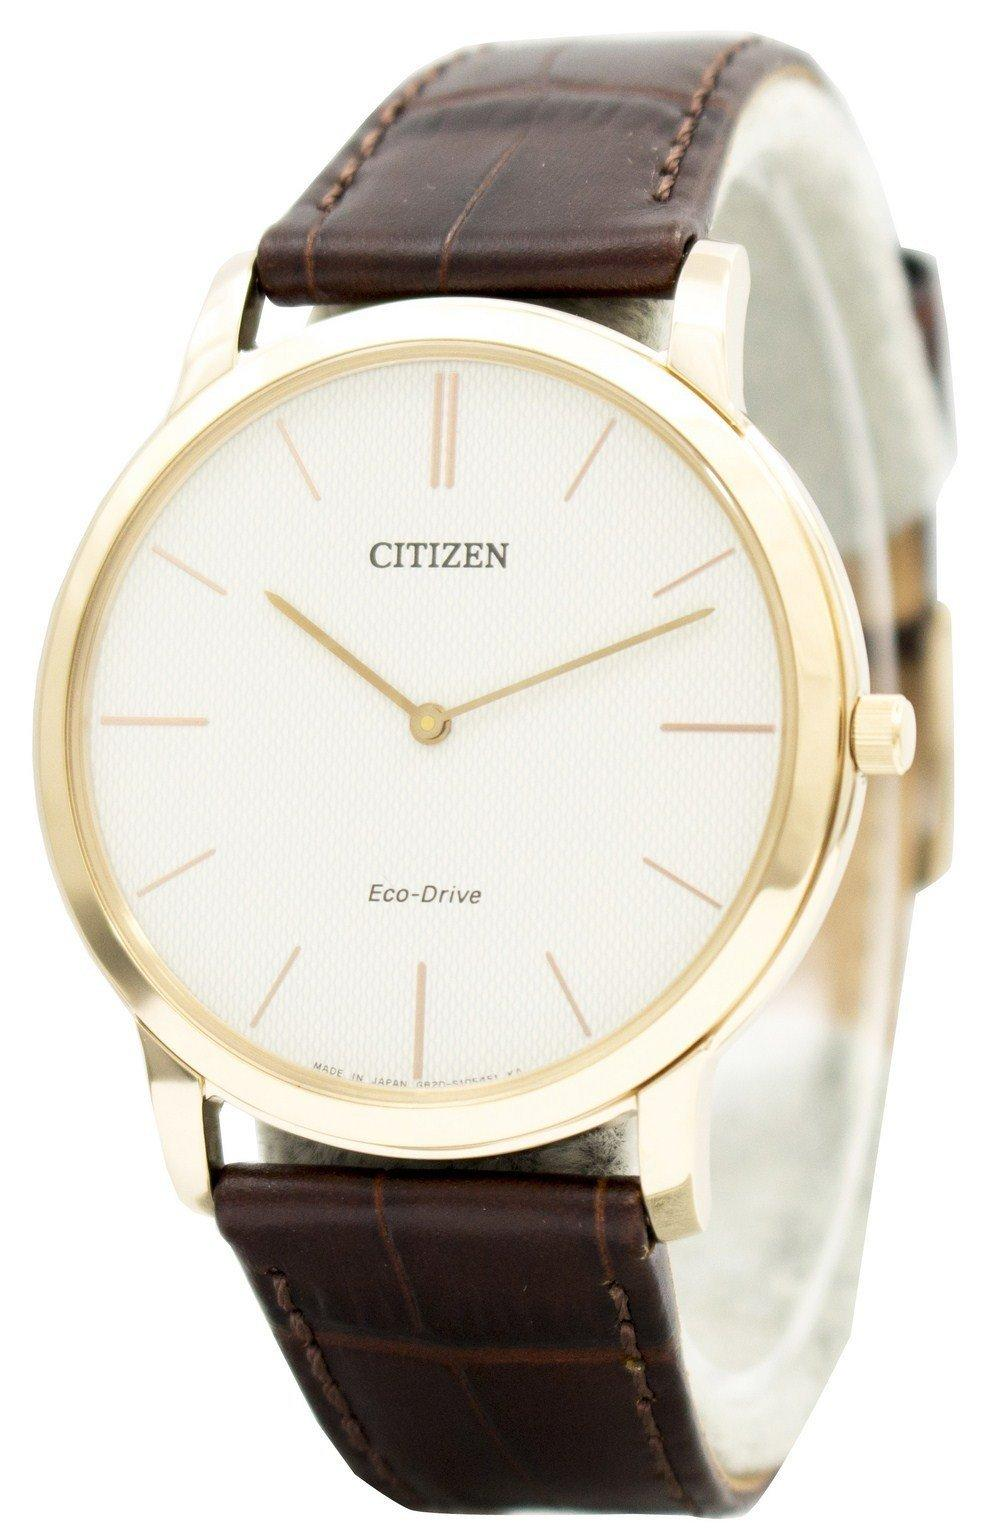 Citizen Eco-drive Stilleto Super Thin Ar1113-12a Men's Watch